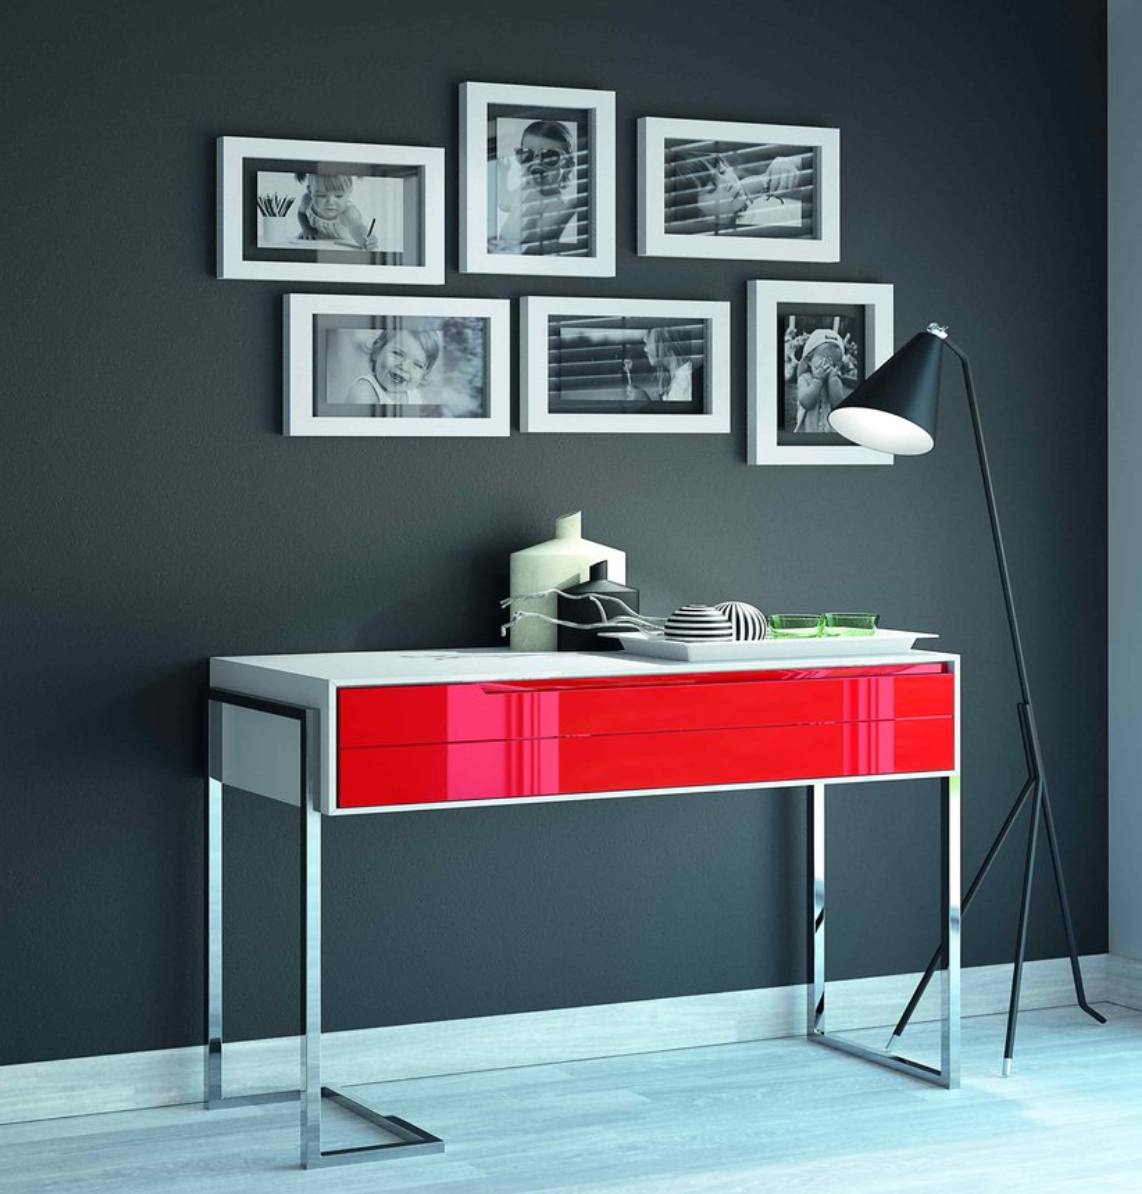 console moderne lea meubles steinmetz. Black Bedroom Furniture Sets. Home Design Ideas